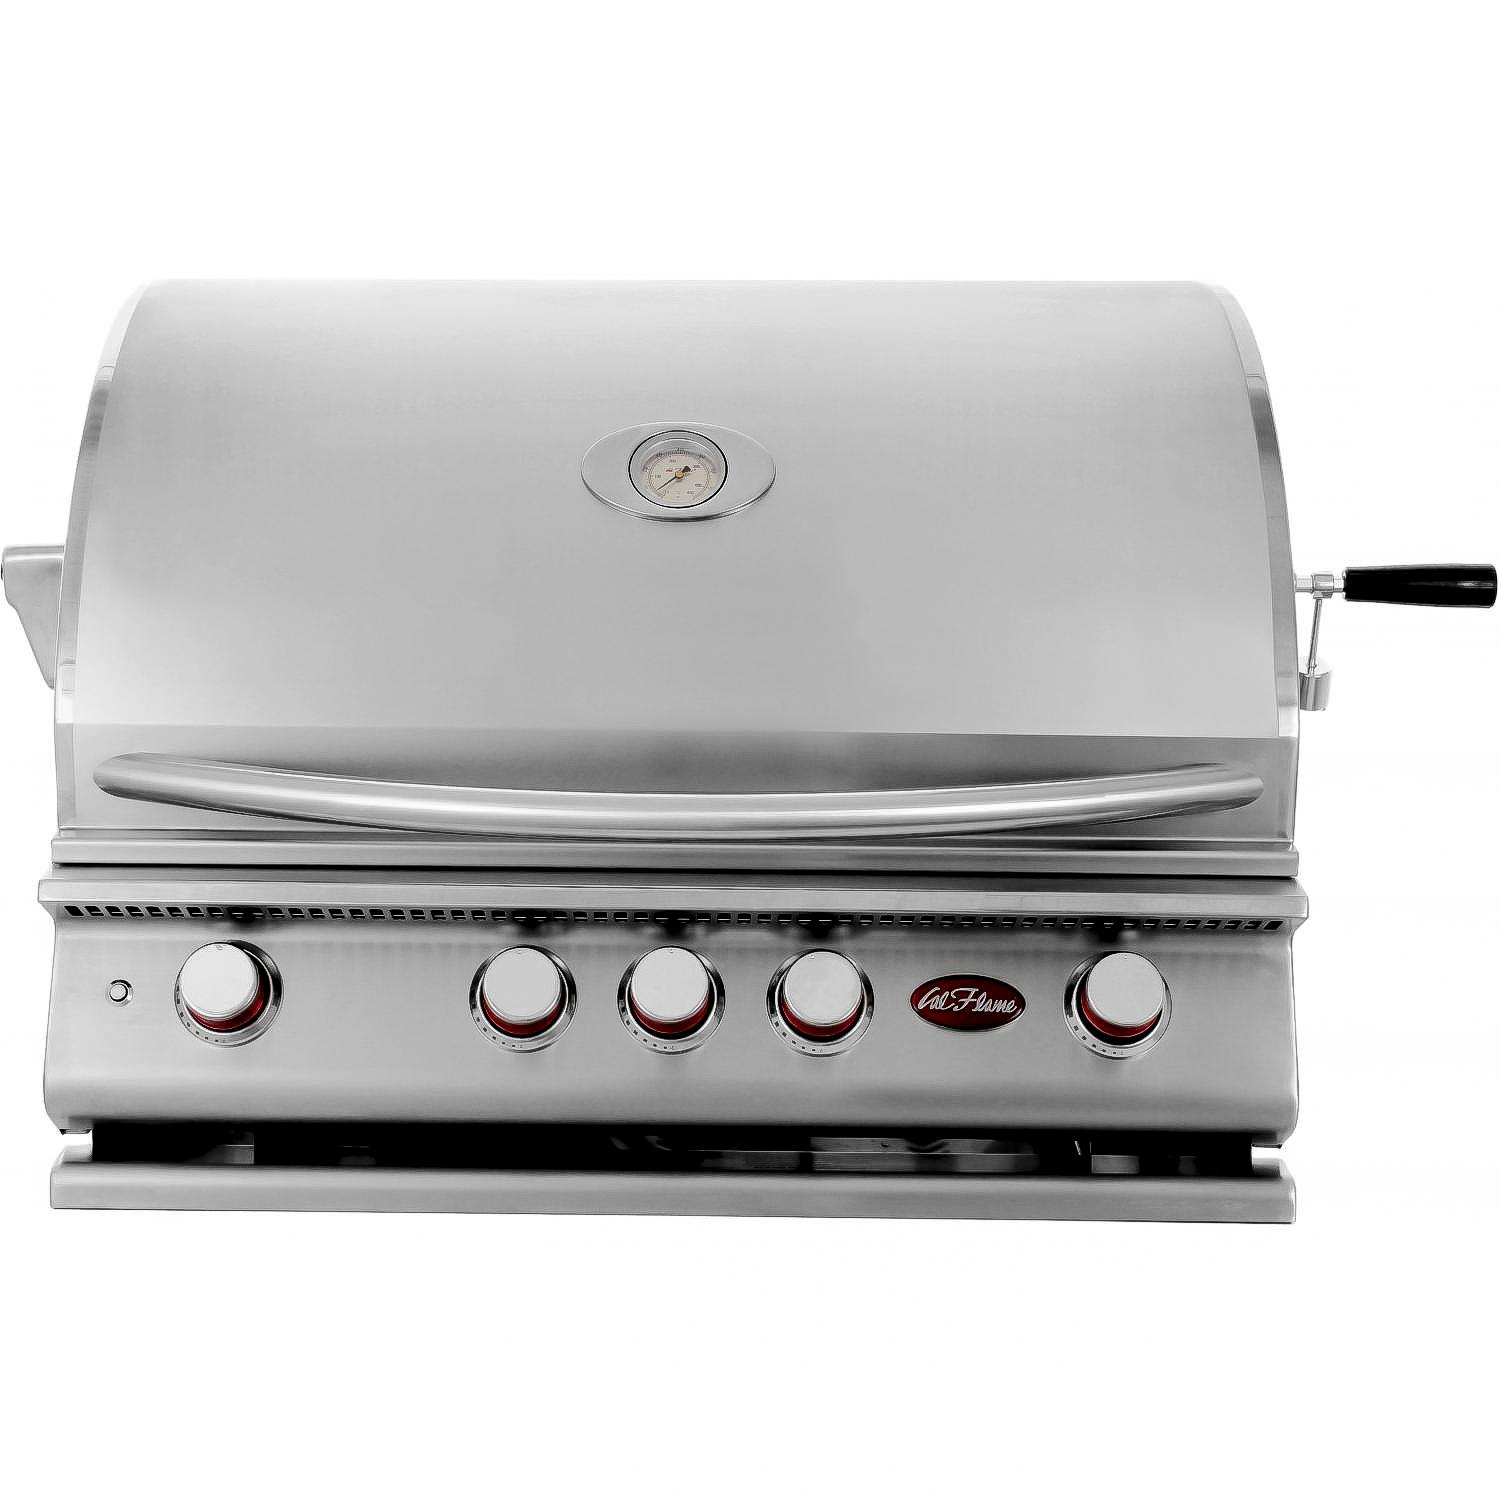 Cal Flame P4 32-Inch 4-Burner Built-In Propane Gas Grill - BBQ13P04 2872922